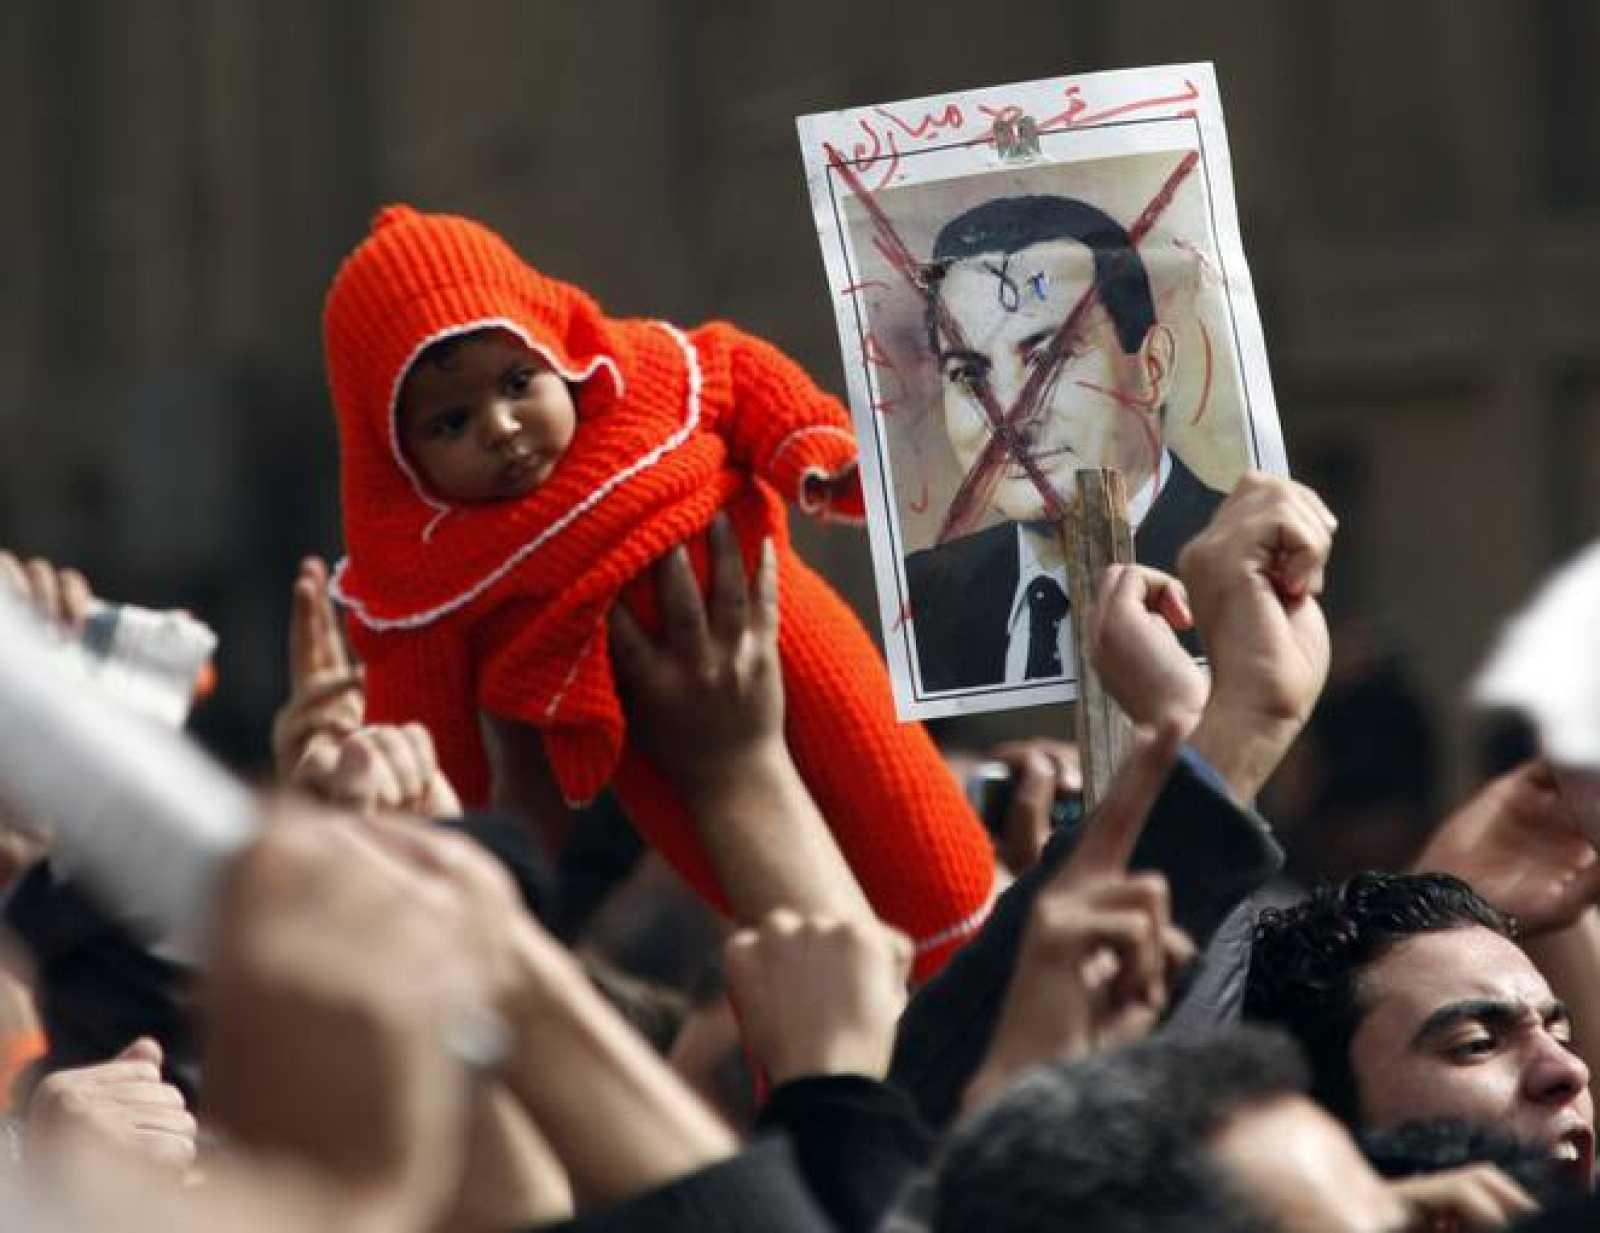 A protester holds up a child in front of a picture of Egypt's President Hosni Mubarak during a protest in Cairo